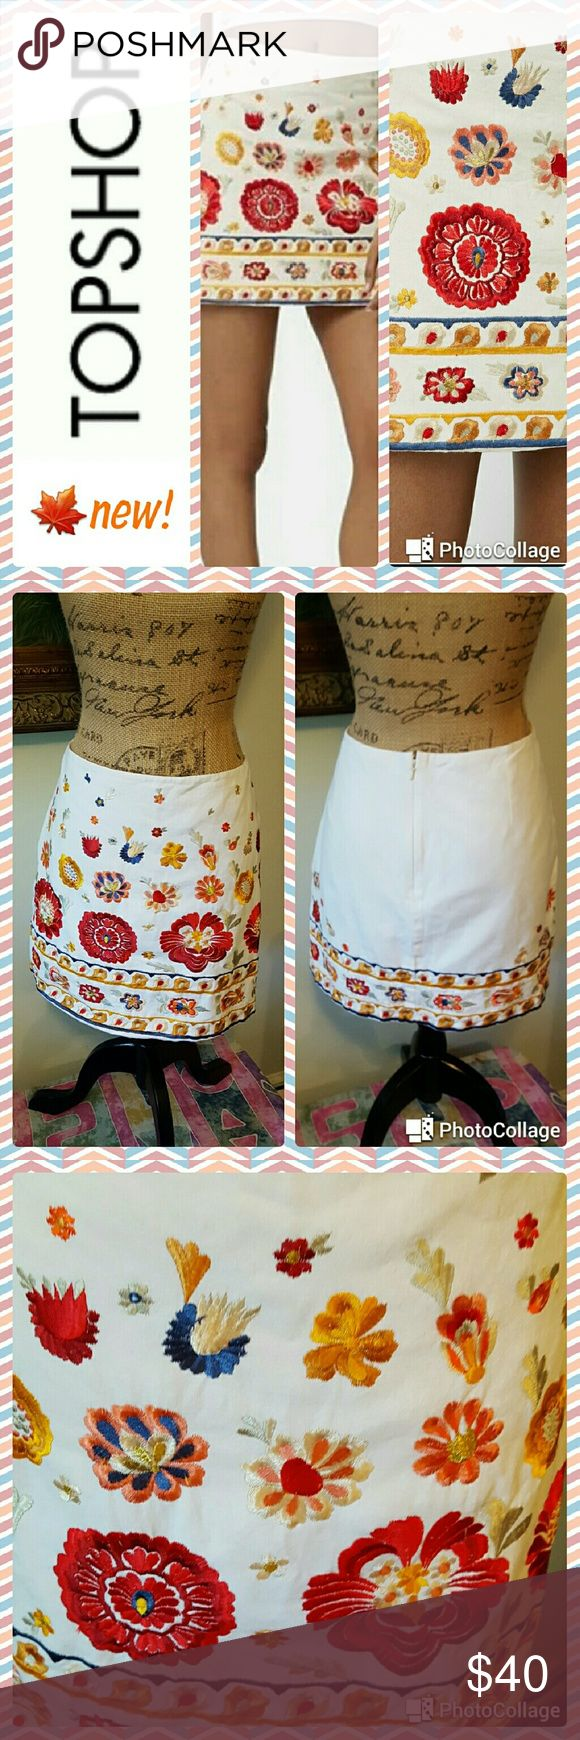 """Topshop Embroidered Align Mini Skirt In excellent condition. Topshop skirt. Ivory cotton align mini skirt with beautiful embroidered detail on front and back near hem. Back zipper. Drop waist. Measurements are length 16.5"""", waist 35"""". Topshop Skirts Mini"""